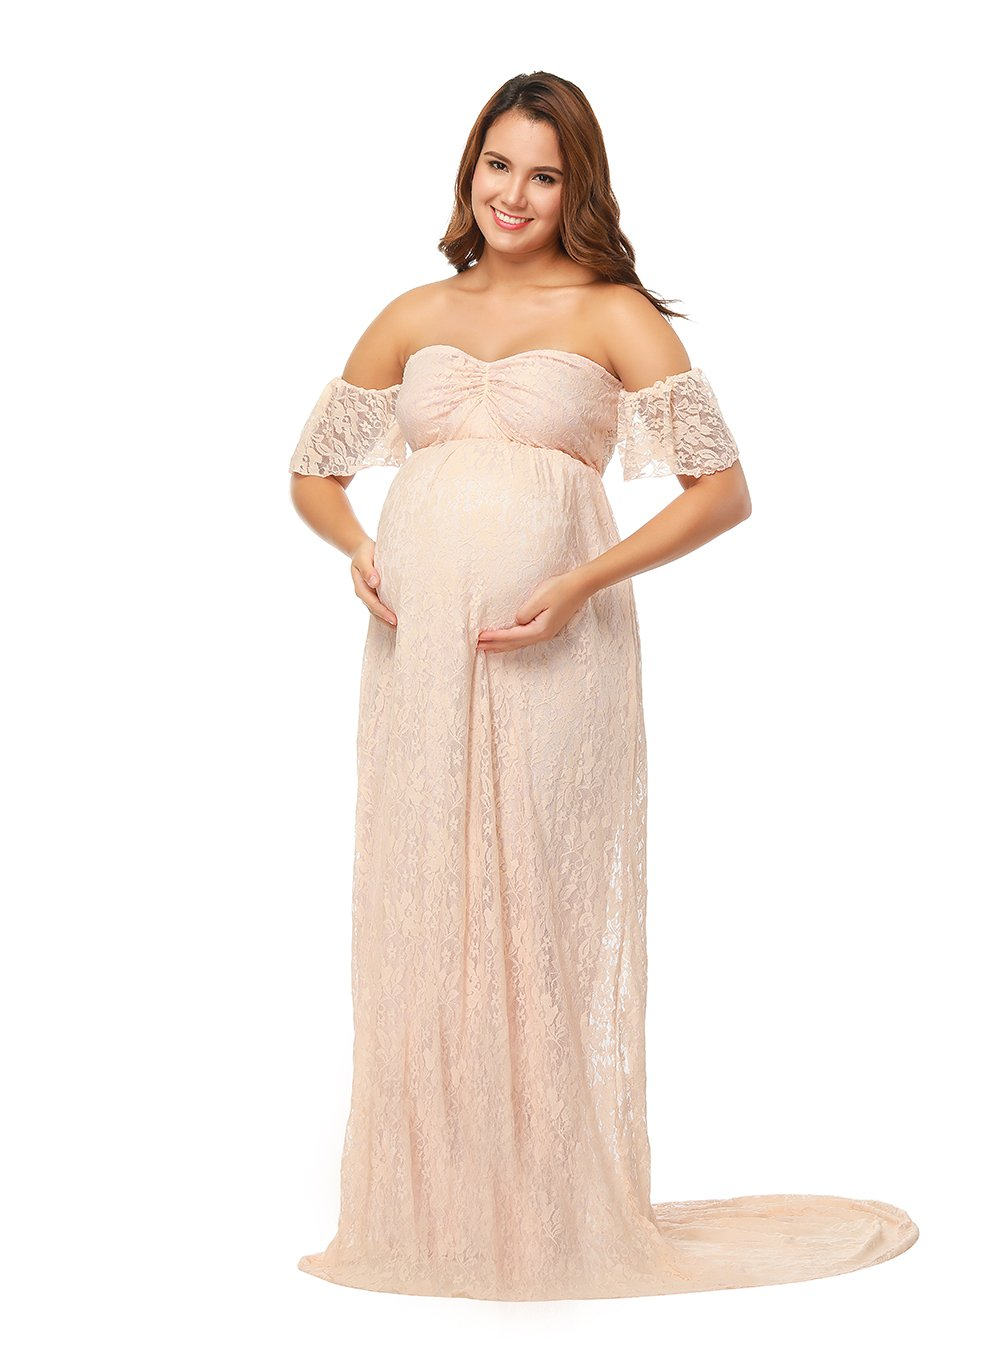 JustVH Women's Off Shoulder Ruffle Sleeve Lace Maternity Gown Maxi Photography Dress,Peach Pink,X-Large